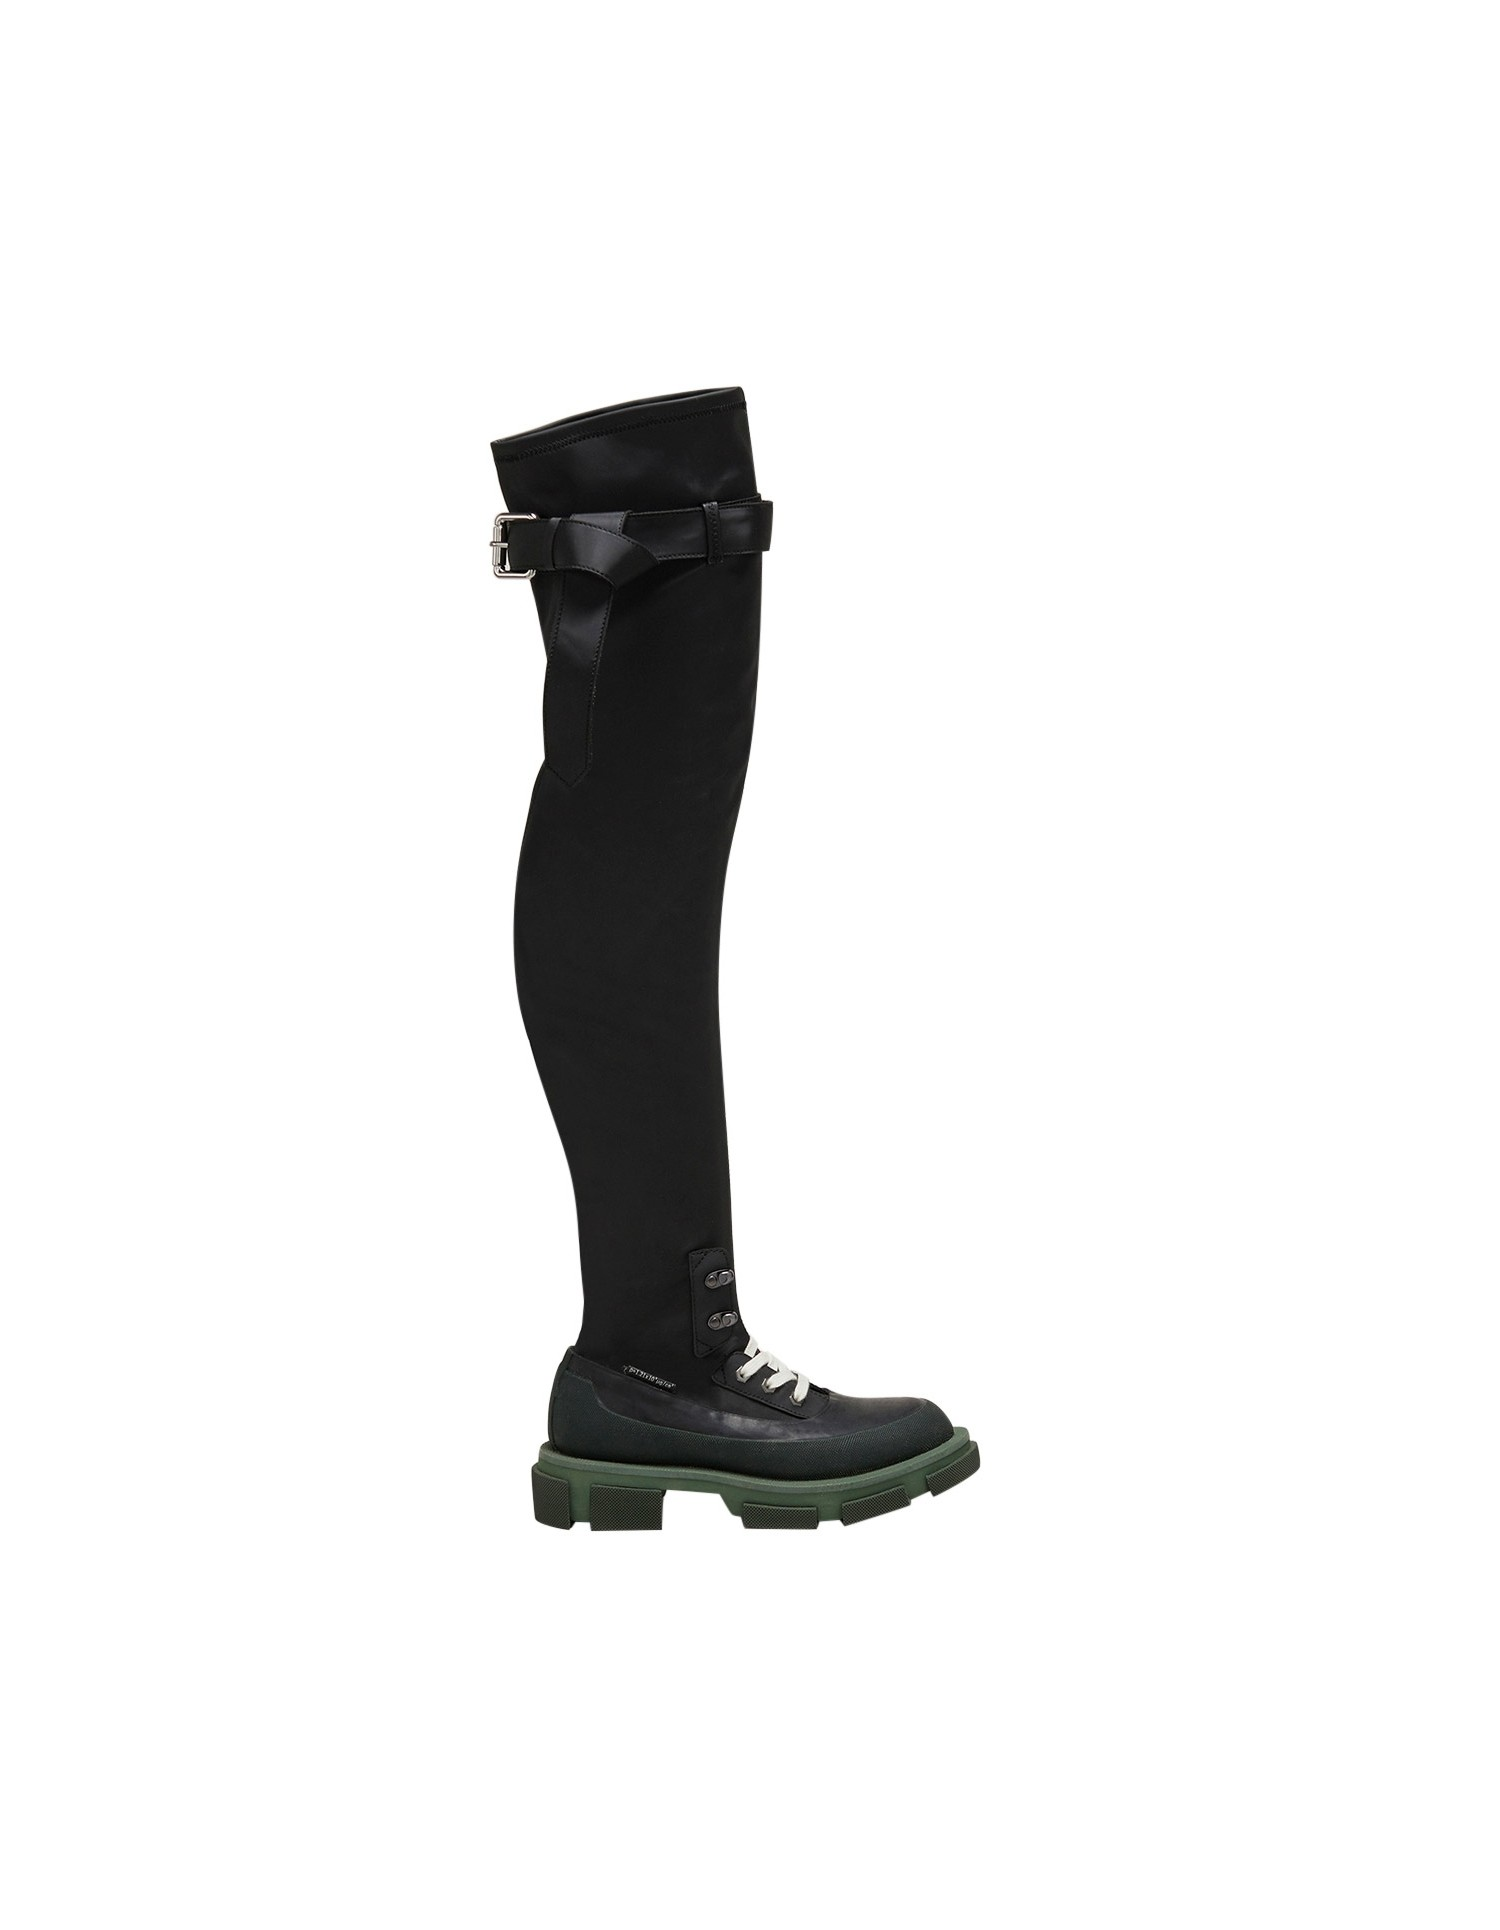 Both x MONSE Gao Thigh High Boots in Olive and Black Right Side Angle View